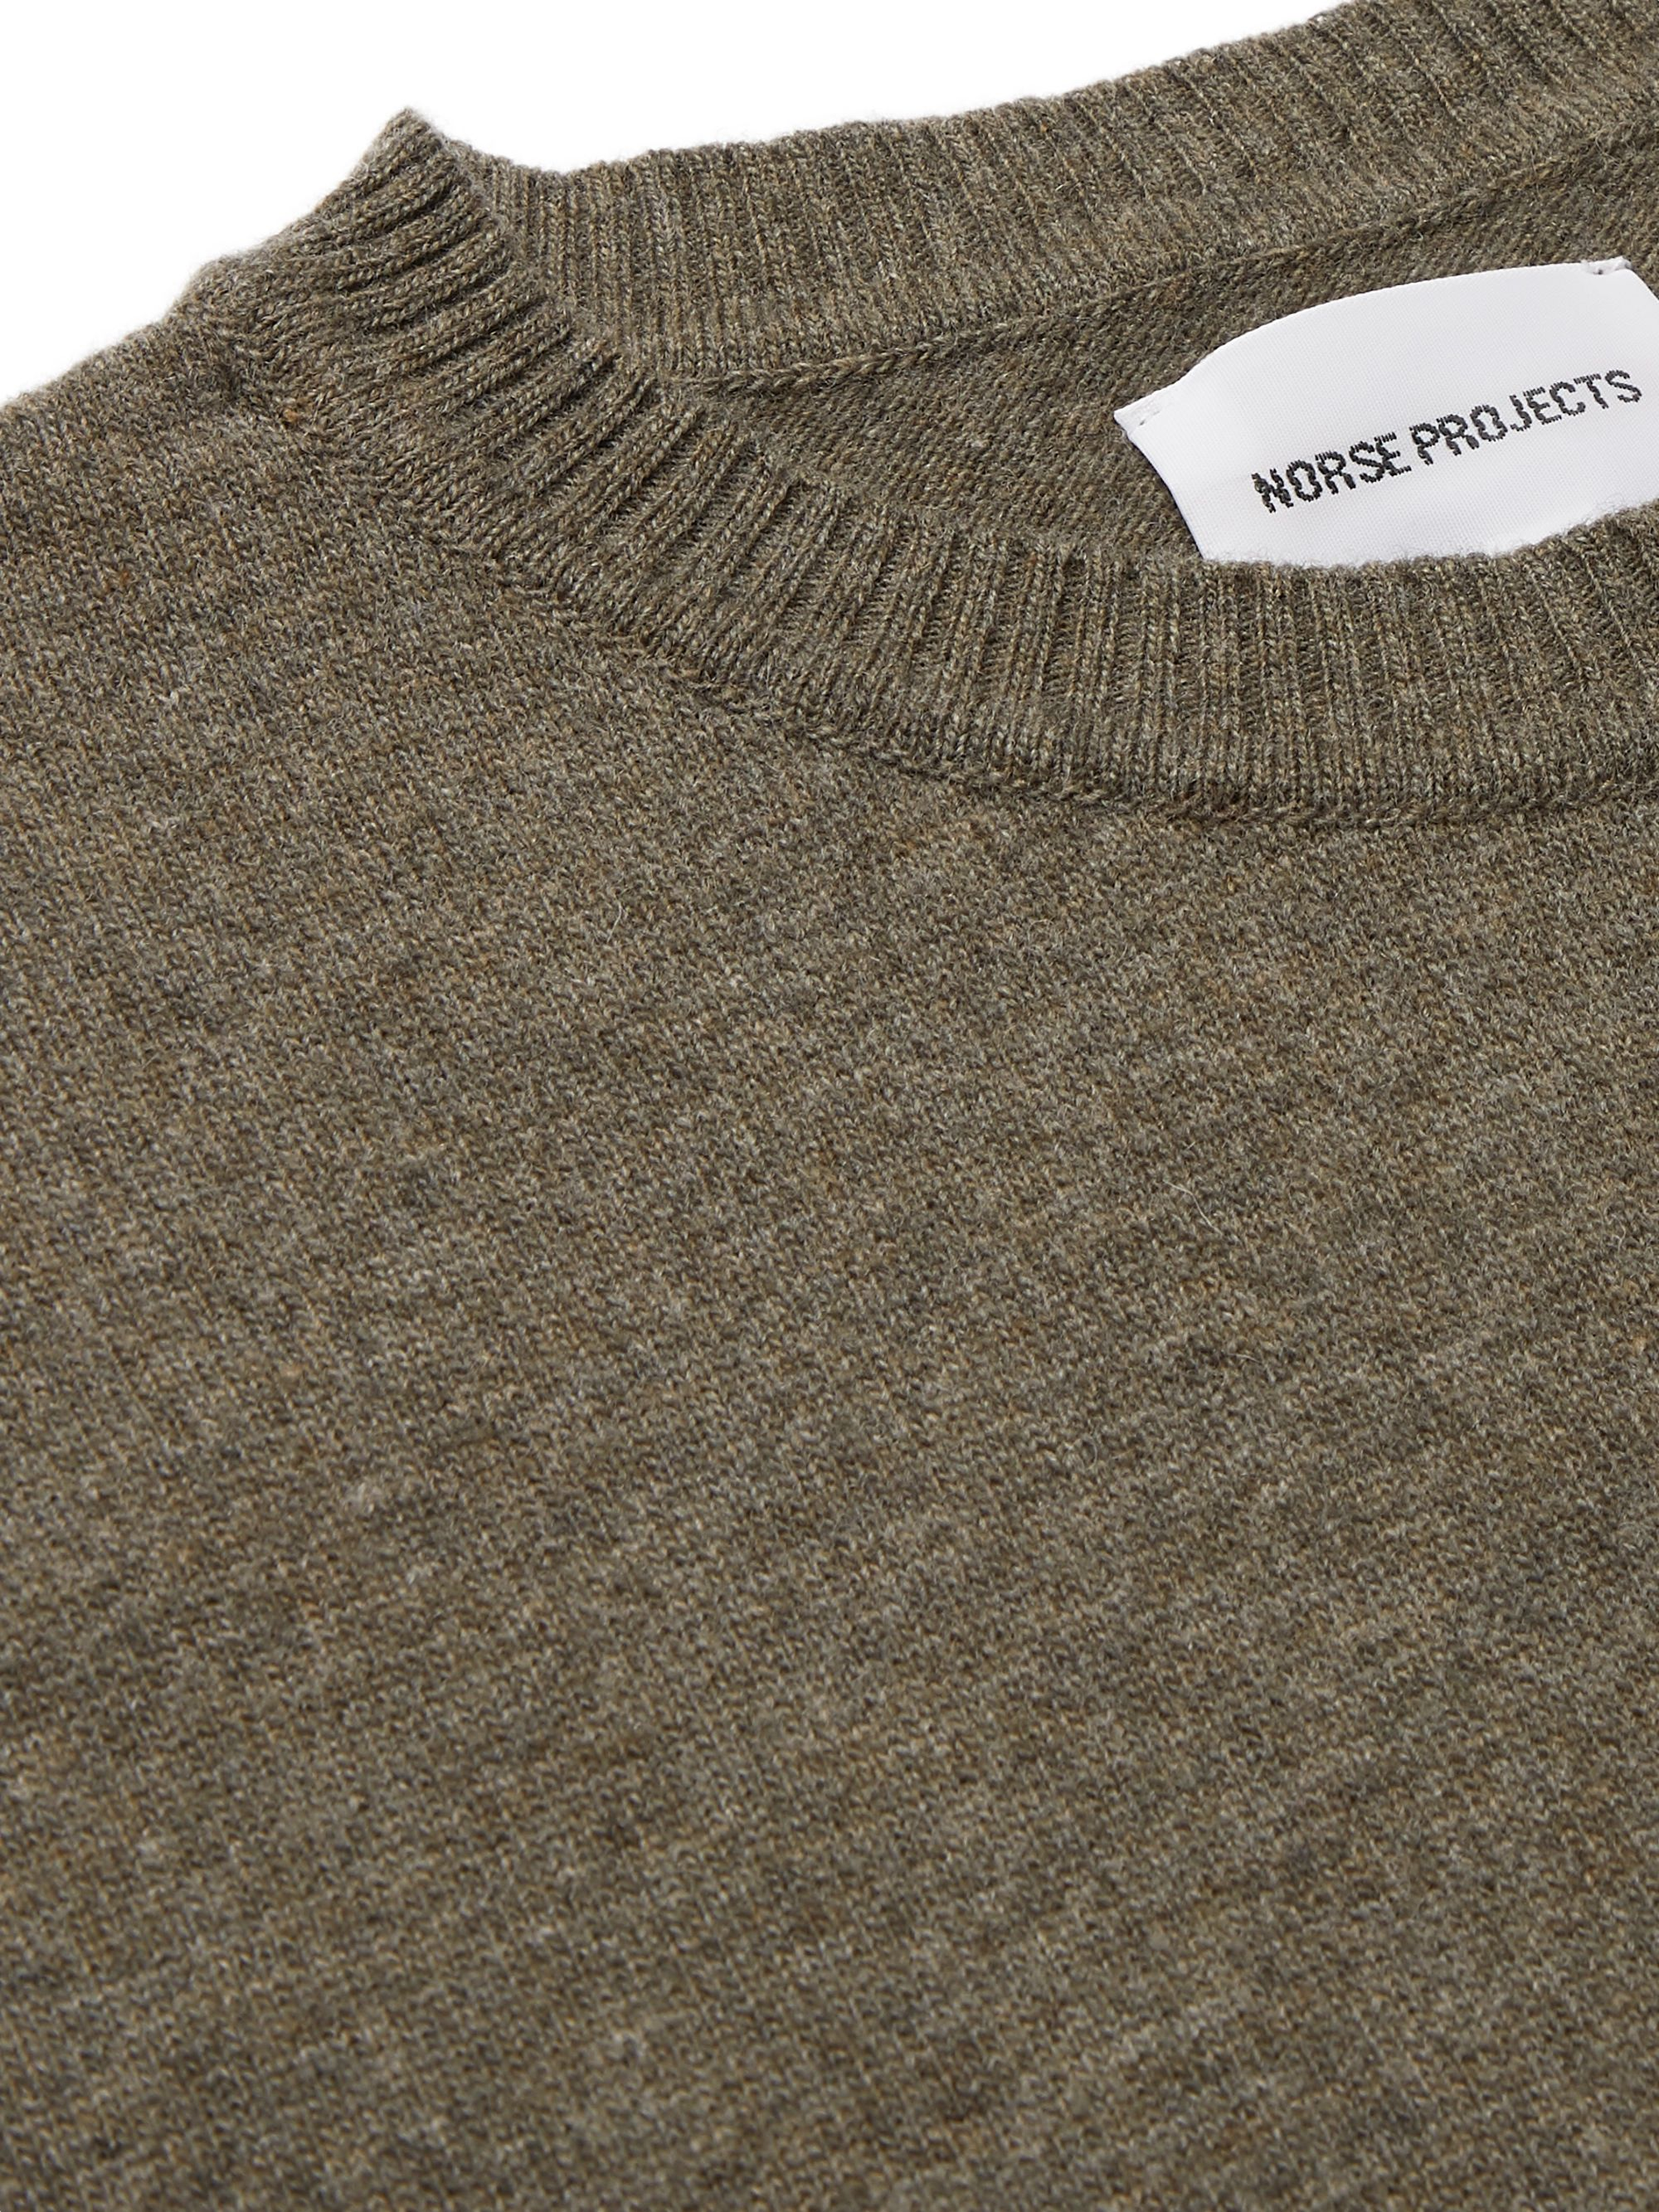 Norse Projects Sigfred Wool Sweater